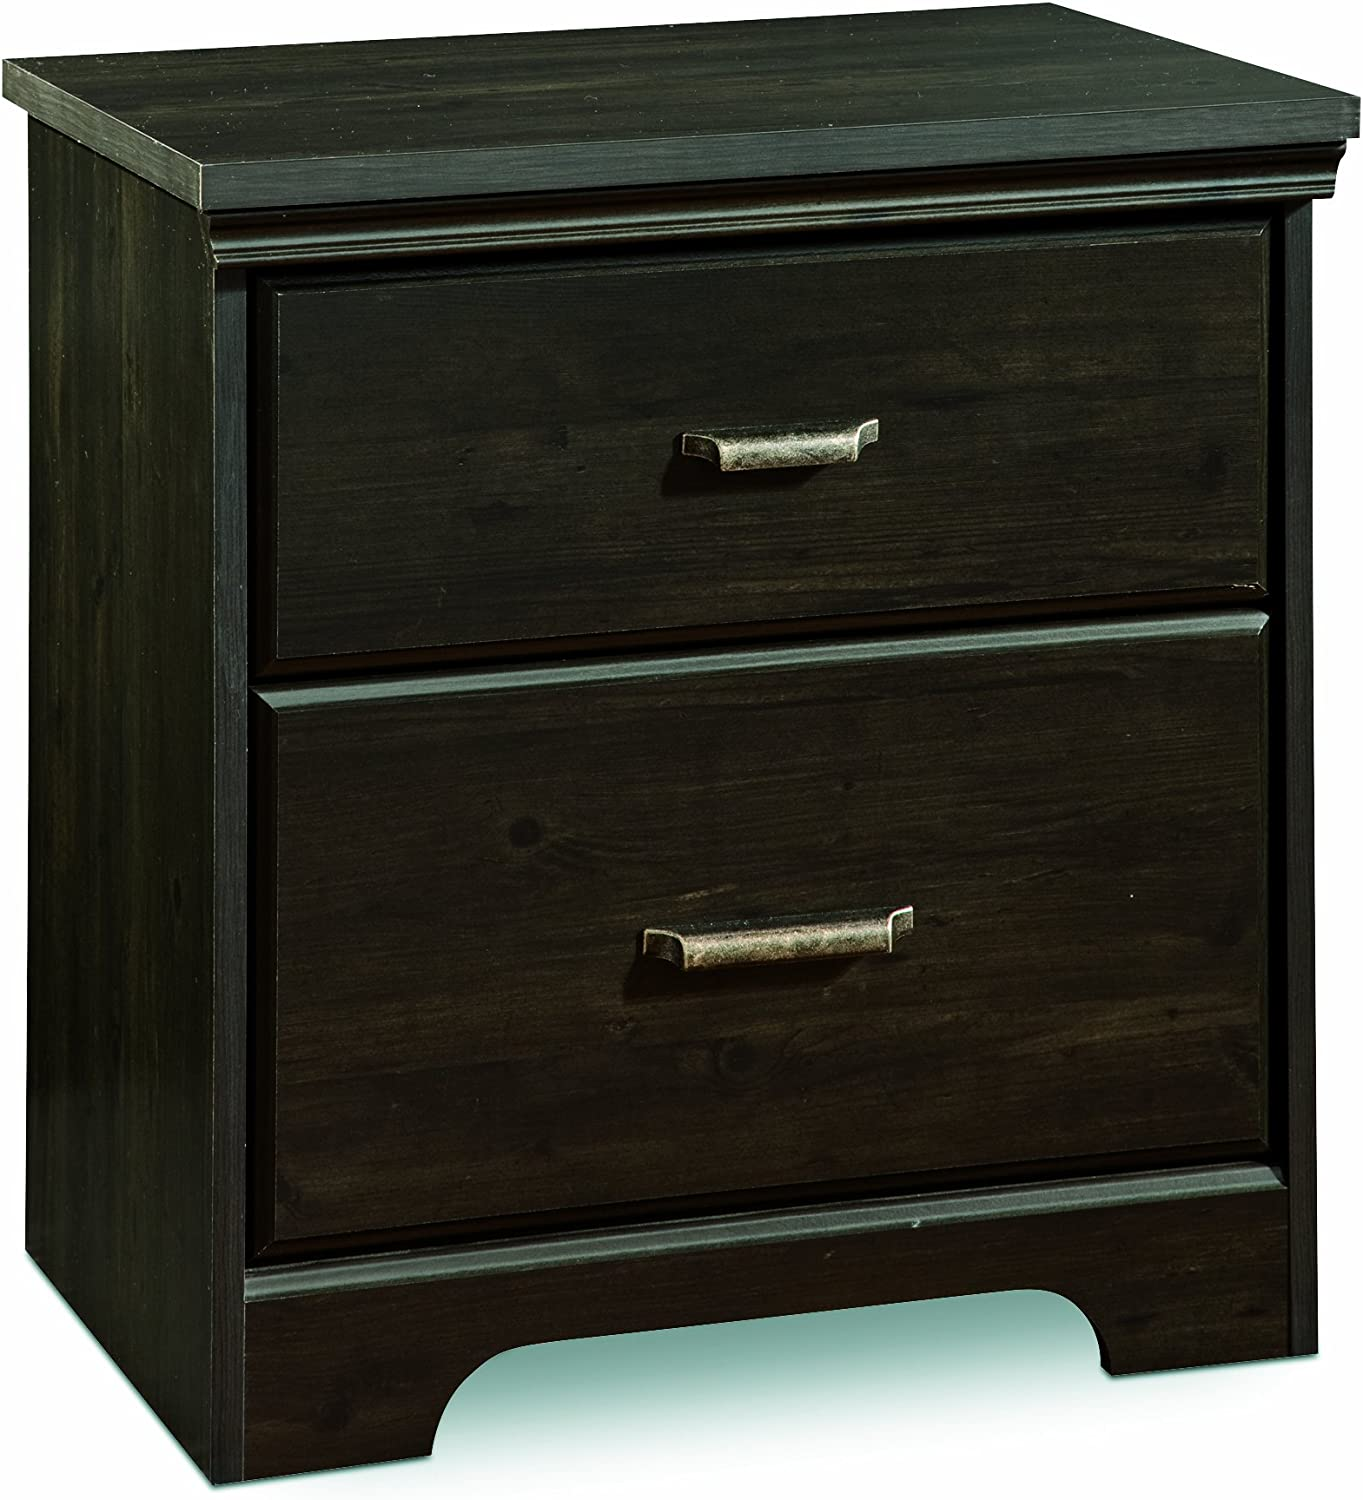 South Shore Versa 2-Drawer Nightstand, Ebony with Antique Handles